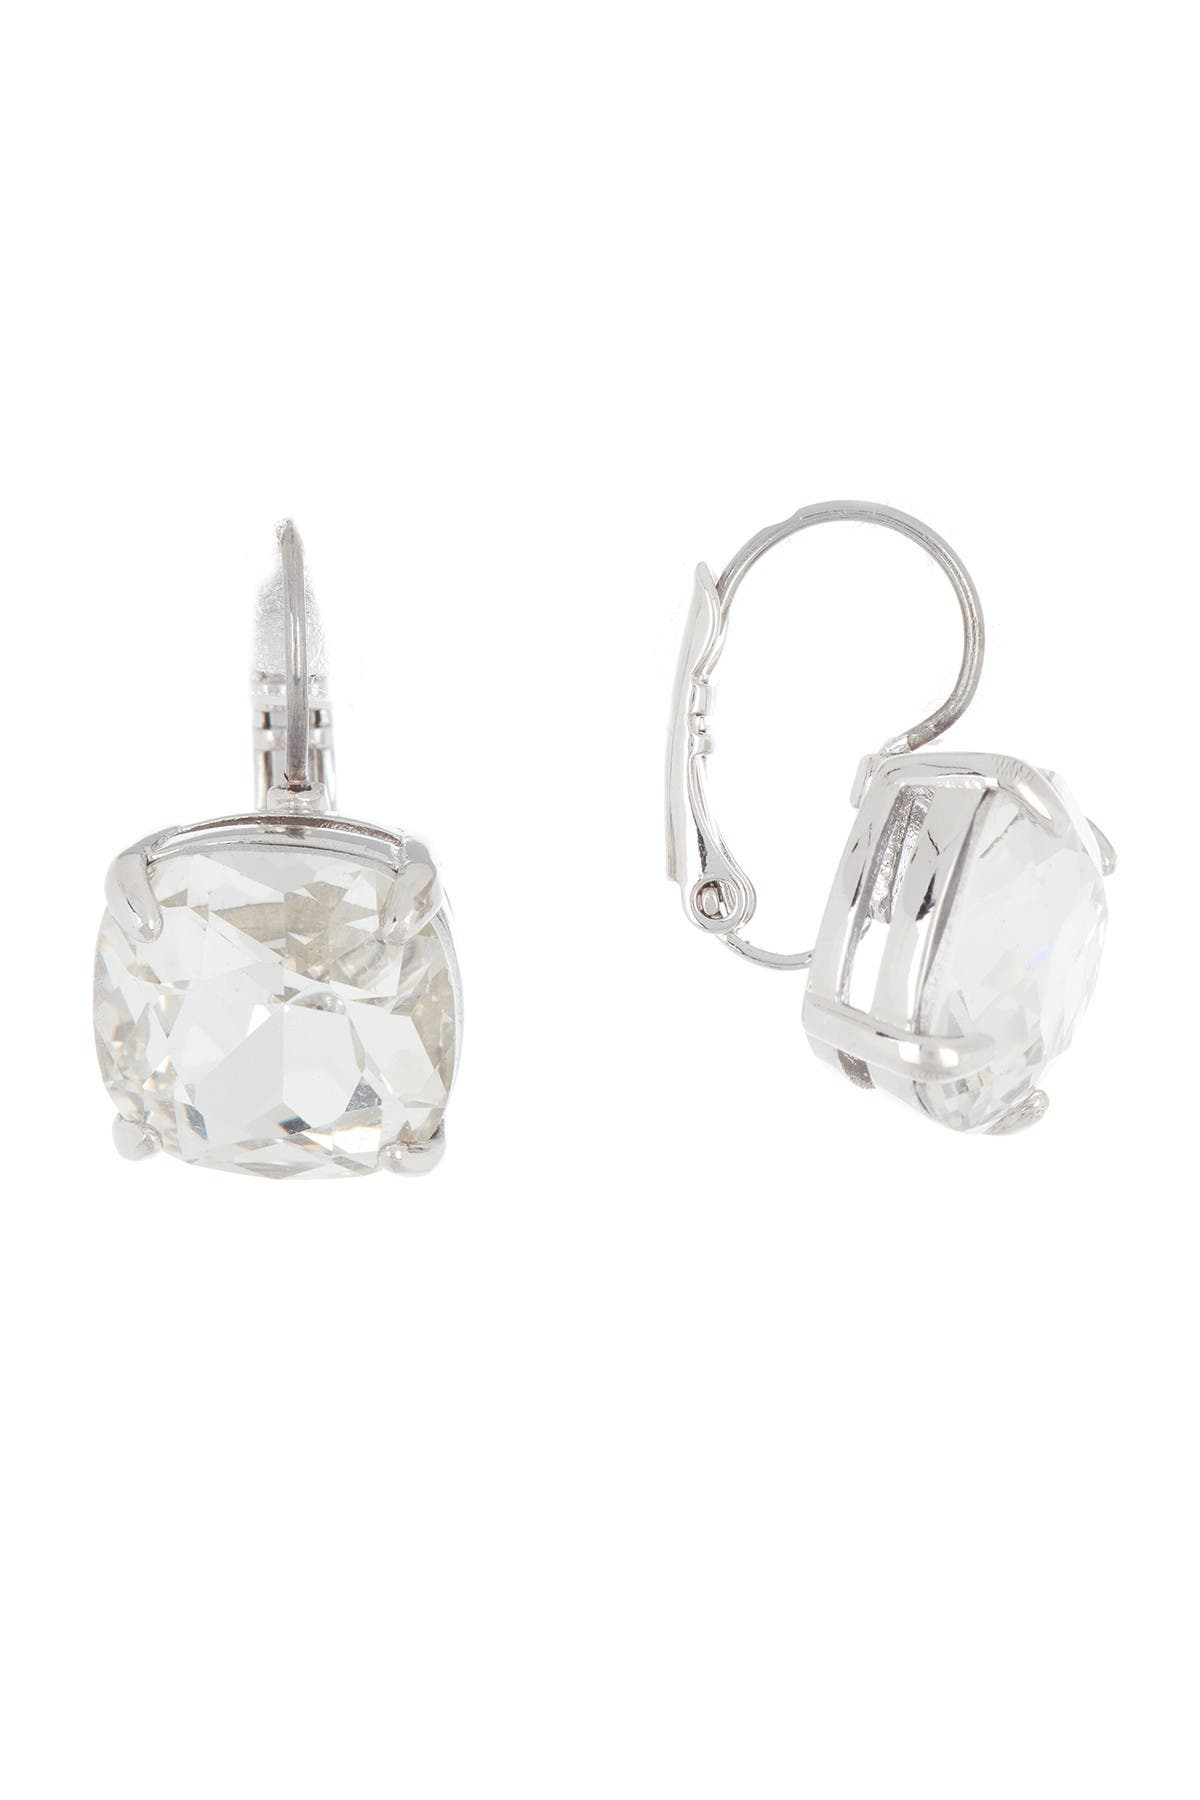 Image of kate spade new york square cz drop earrings